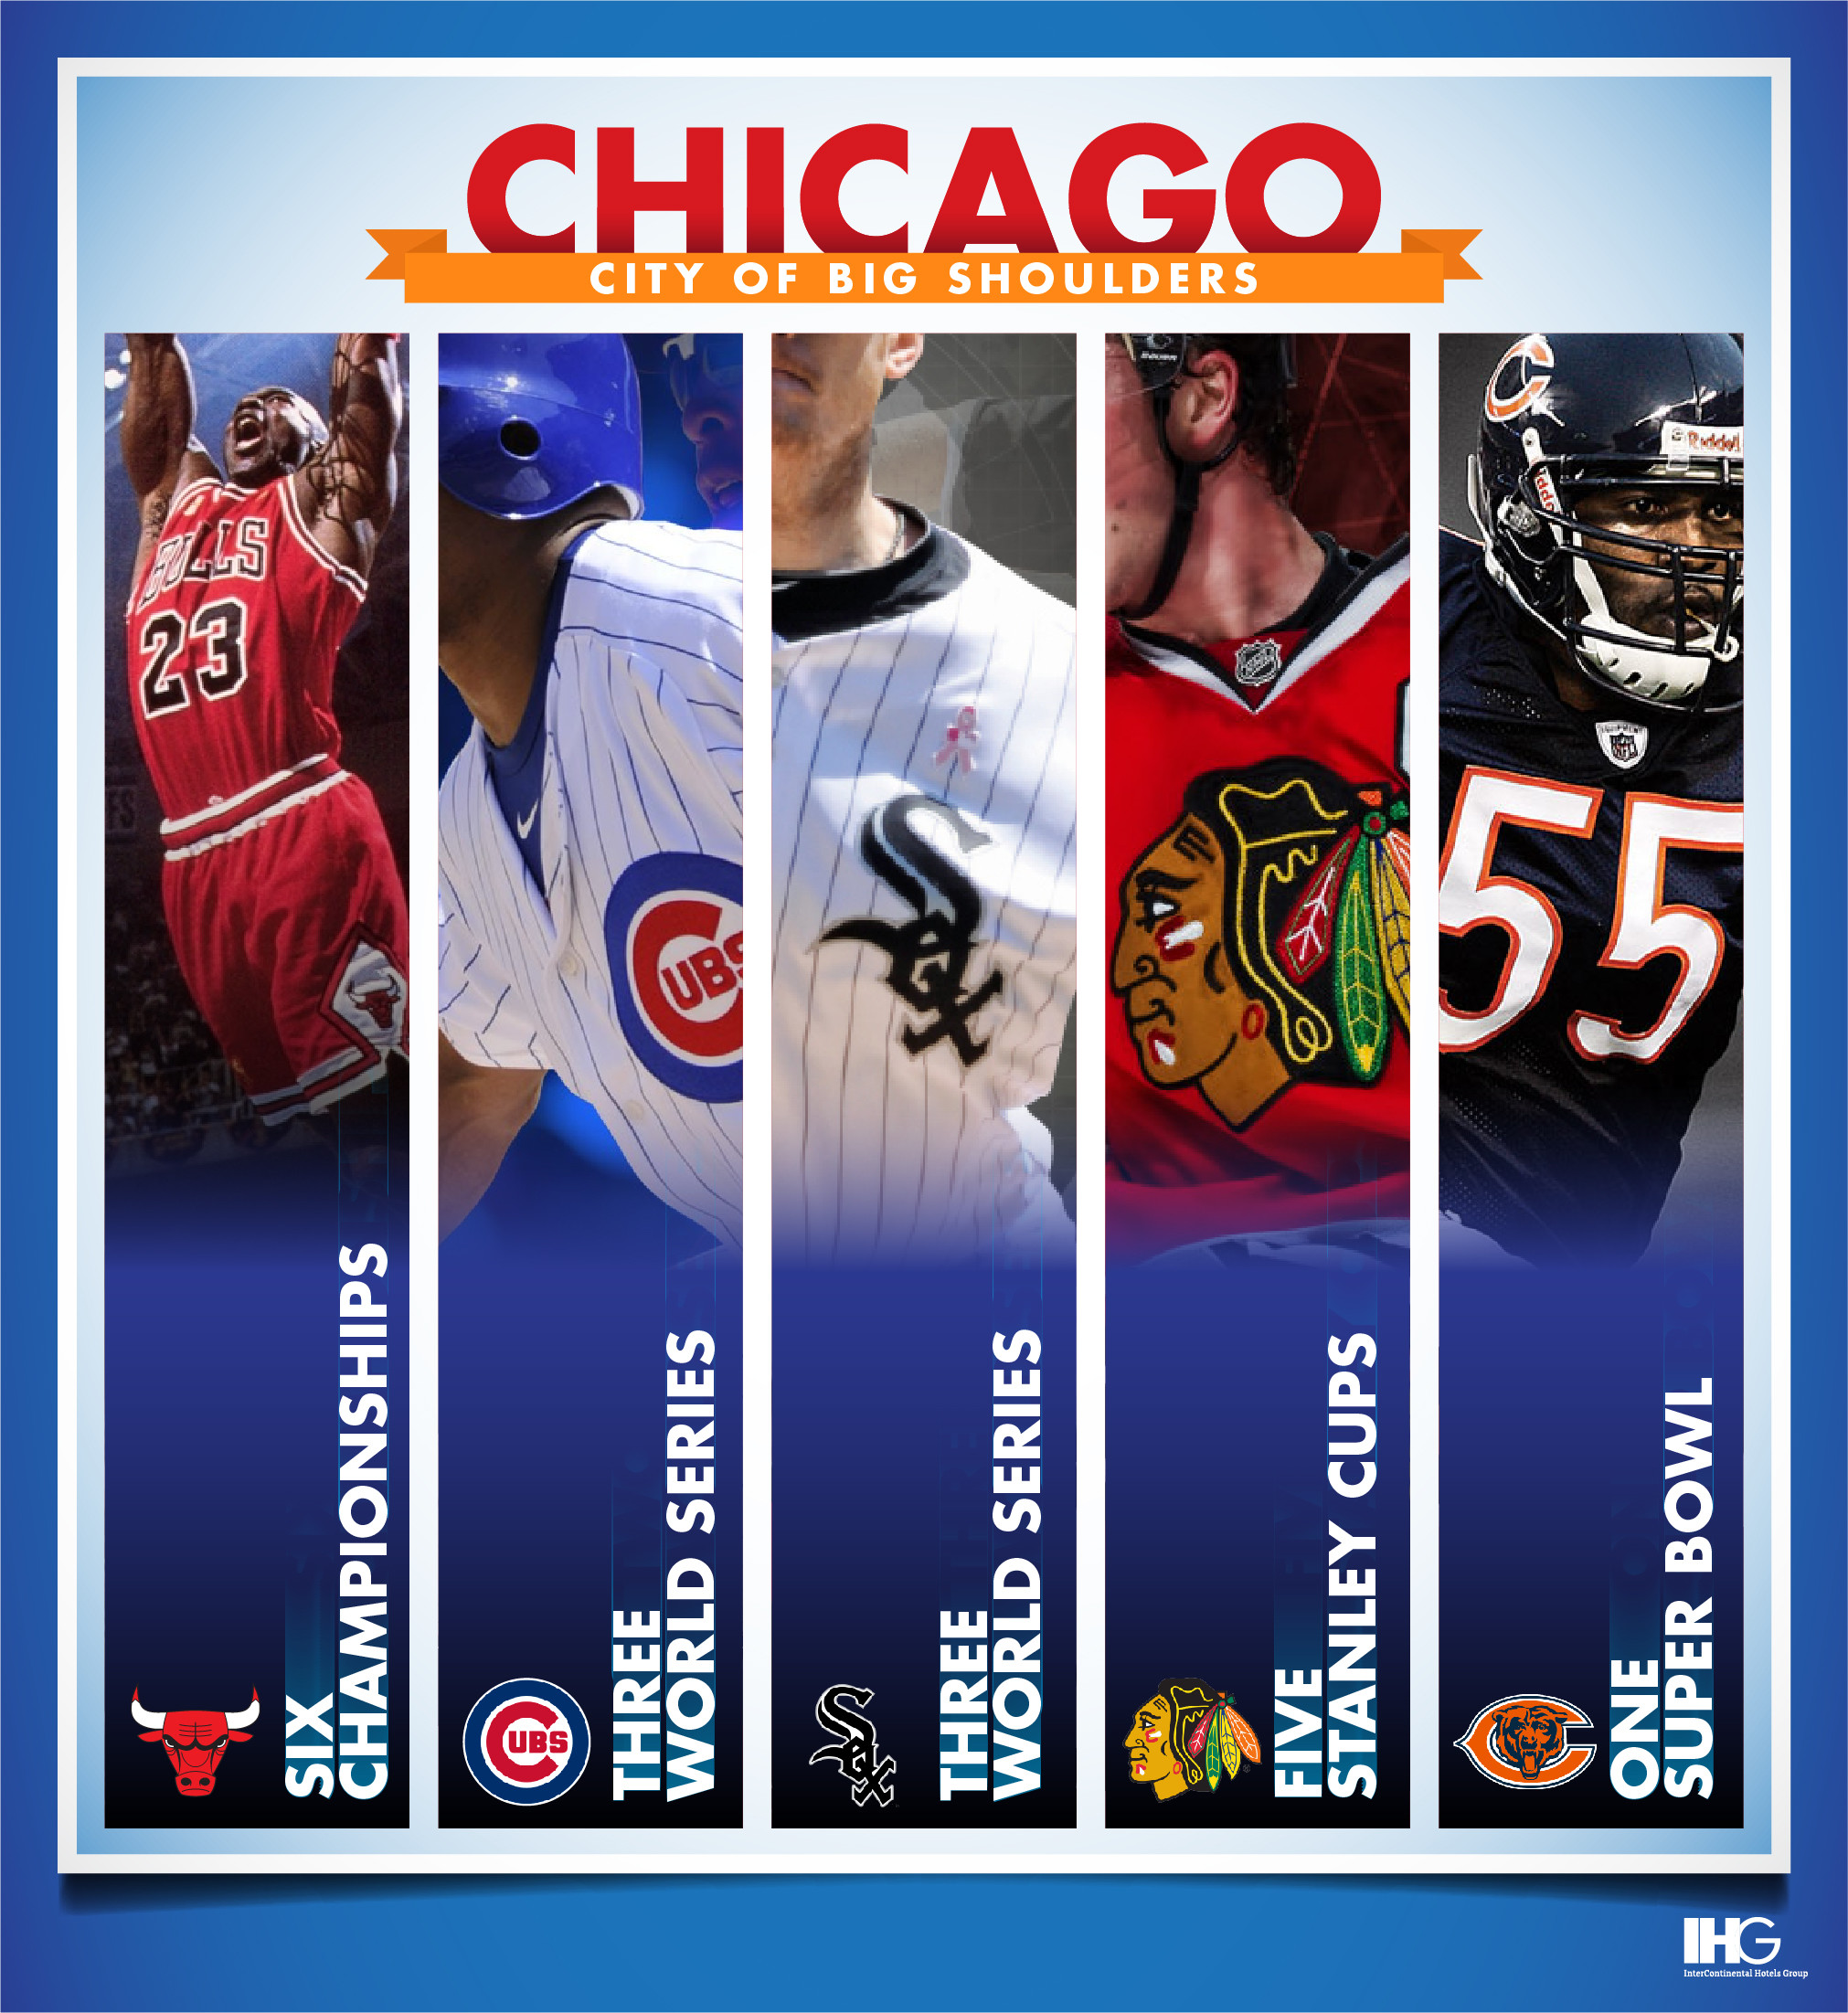 2022x2203 chicago-sports-championships